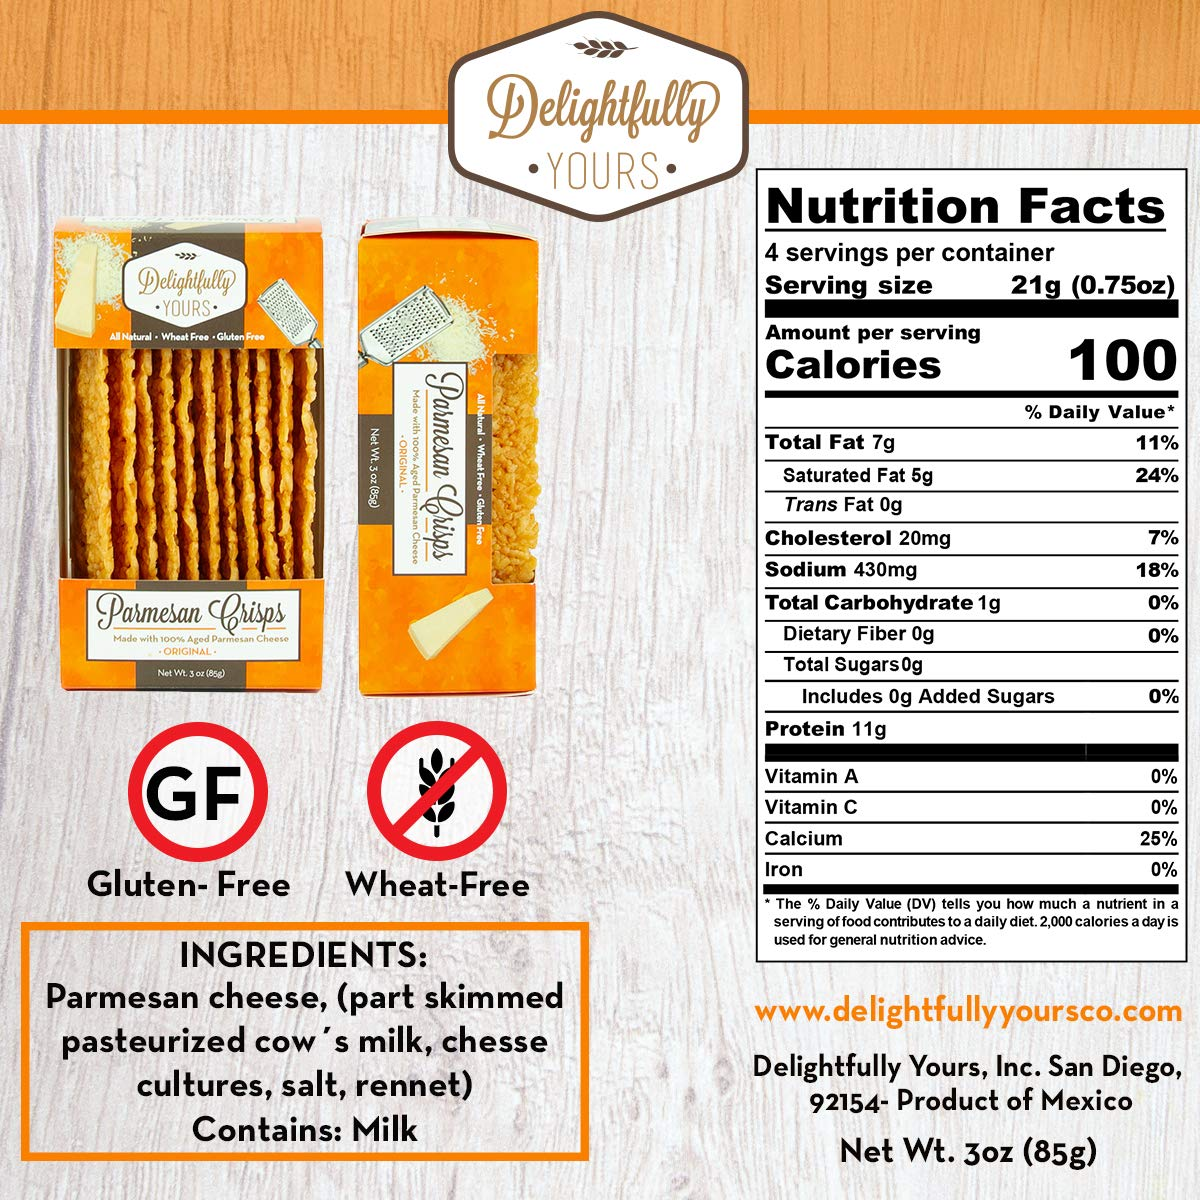 Delightfully Yours: Low Carb Parmesan Cheese Crisps {ORIGINAL Flavor} 100% aged - Flavorful Handmade - Keto Friendly Snack - All Natural - Wheat Free - Gluten Free - Protein Packed 12 OZ (4 PACK) by Delightfully Yours (Image #6)